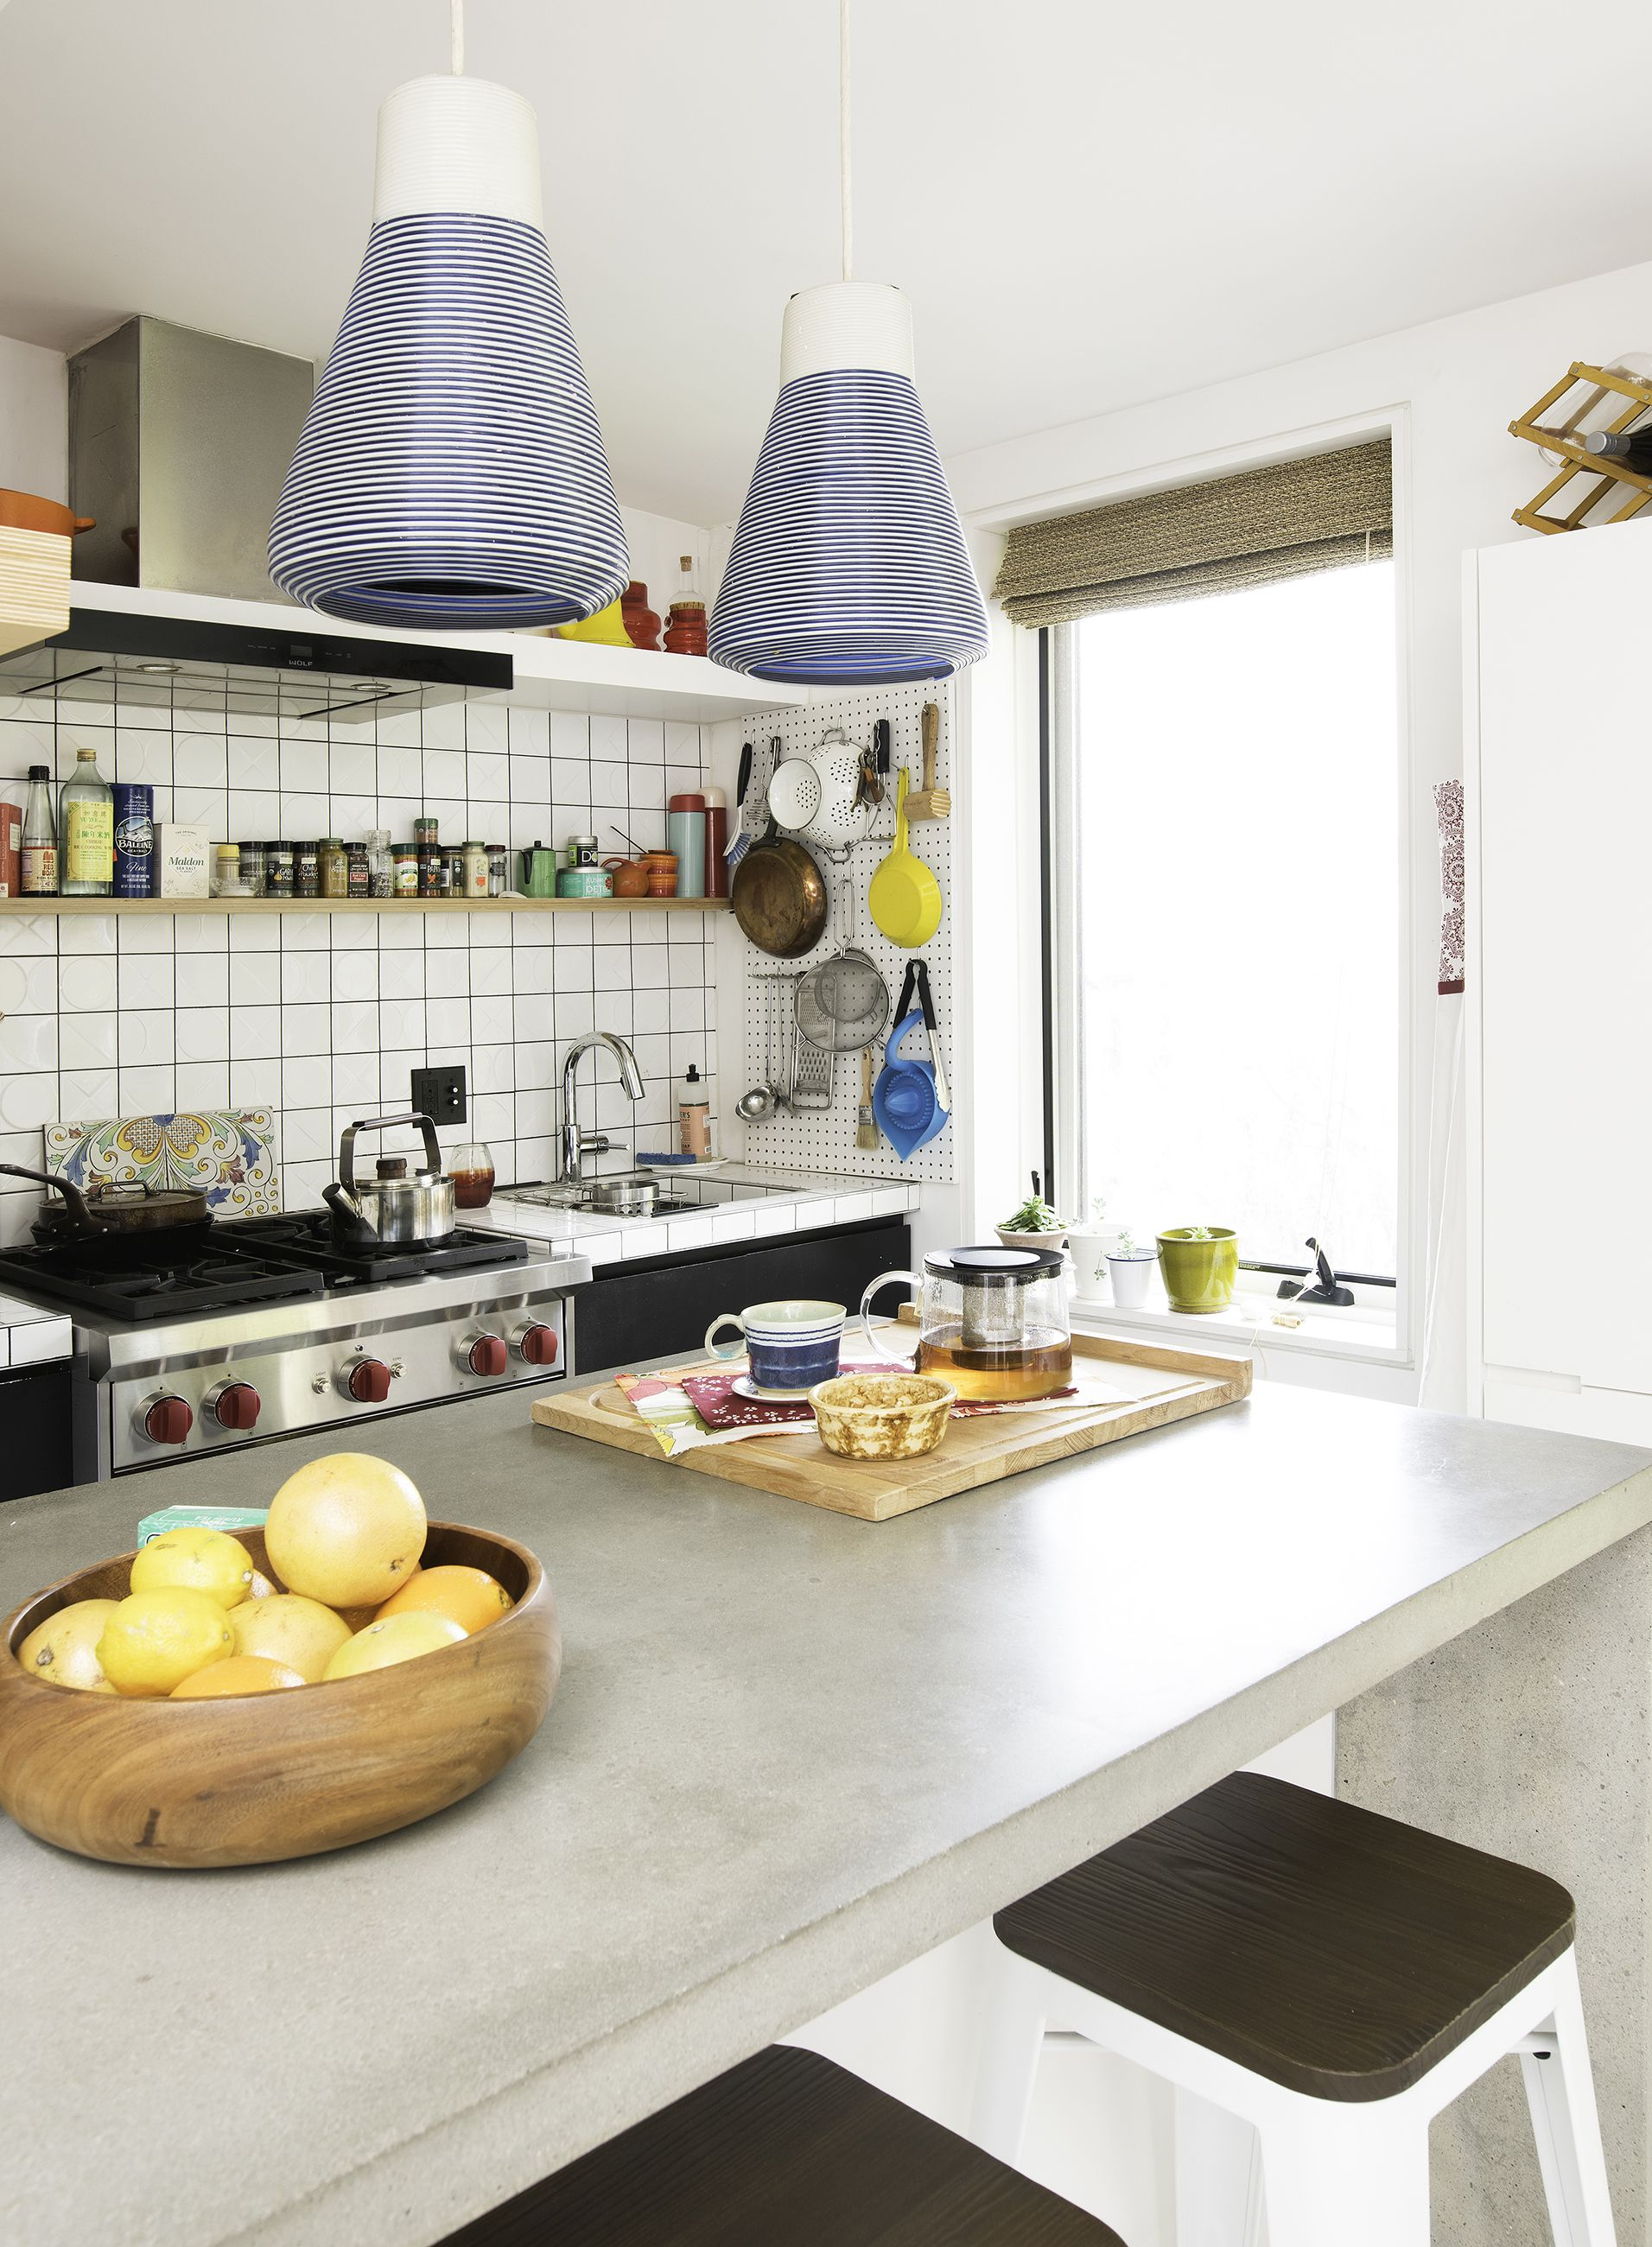 20 Kitchen Open Shelf Ideas - How to Use Open Shelving in ...